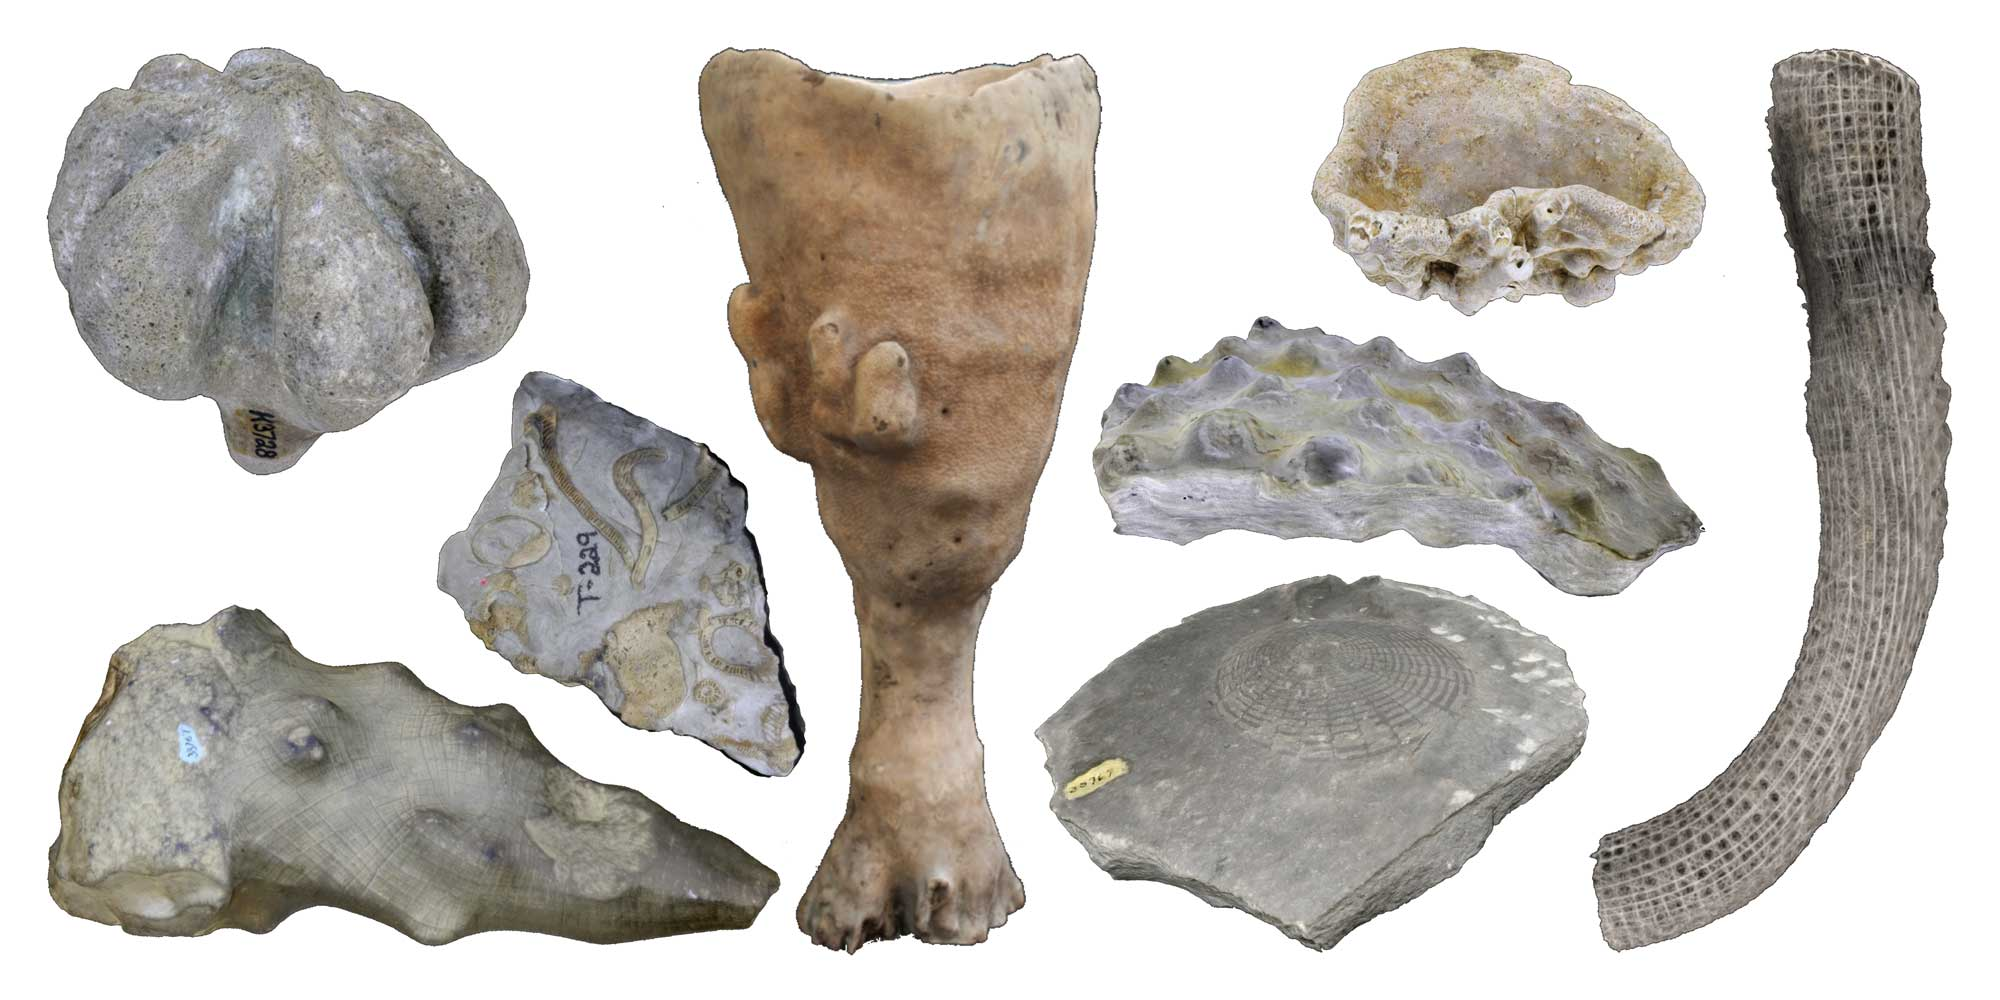 Images of different types of fossil and modern sponge specimens.